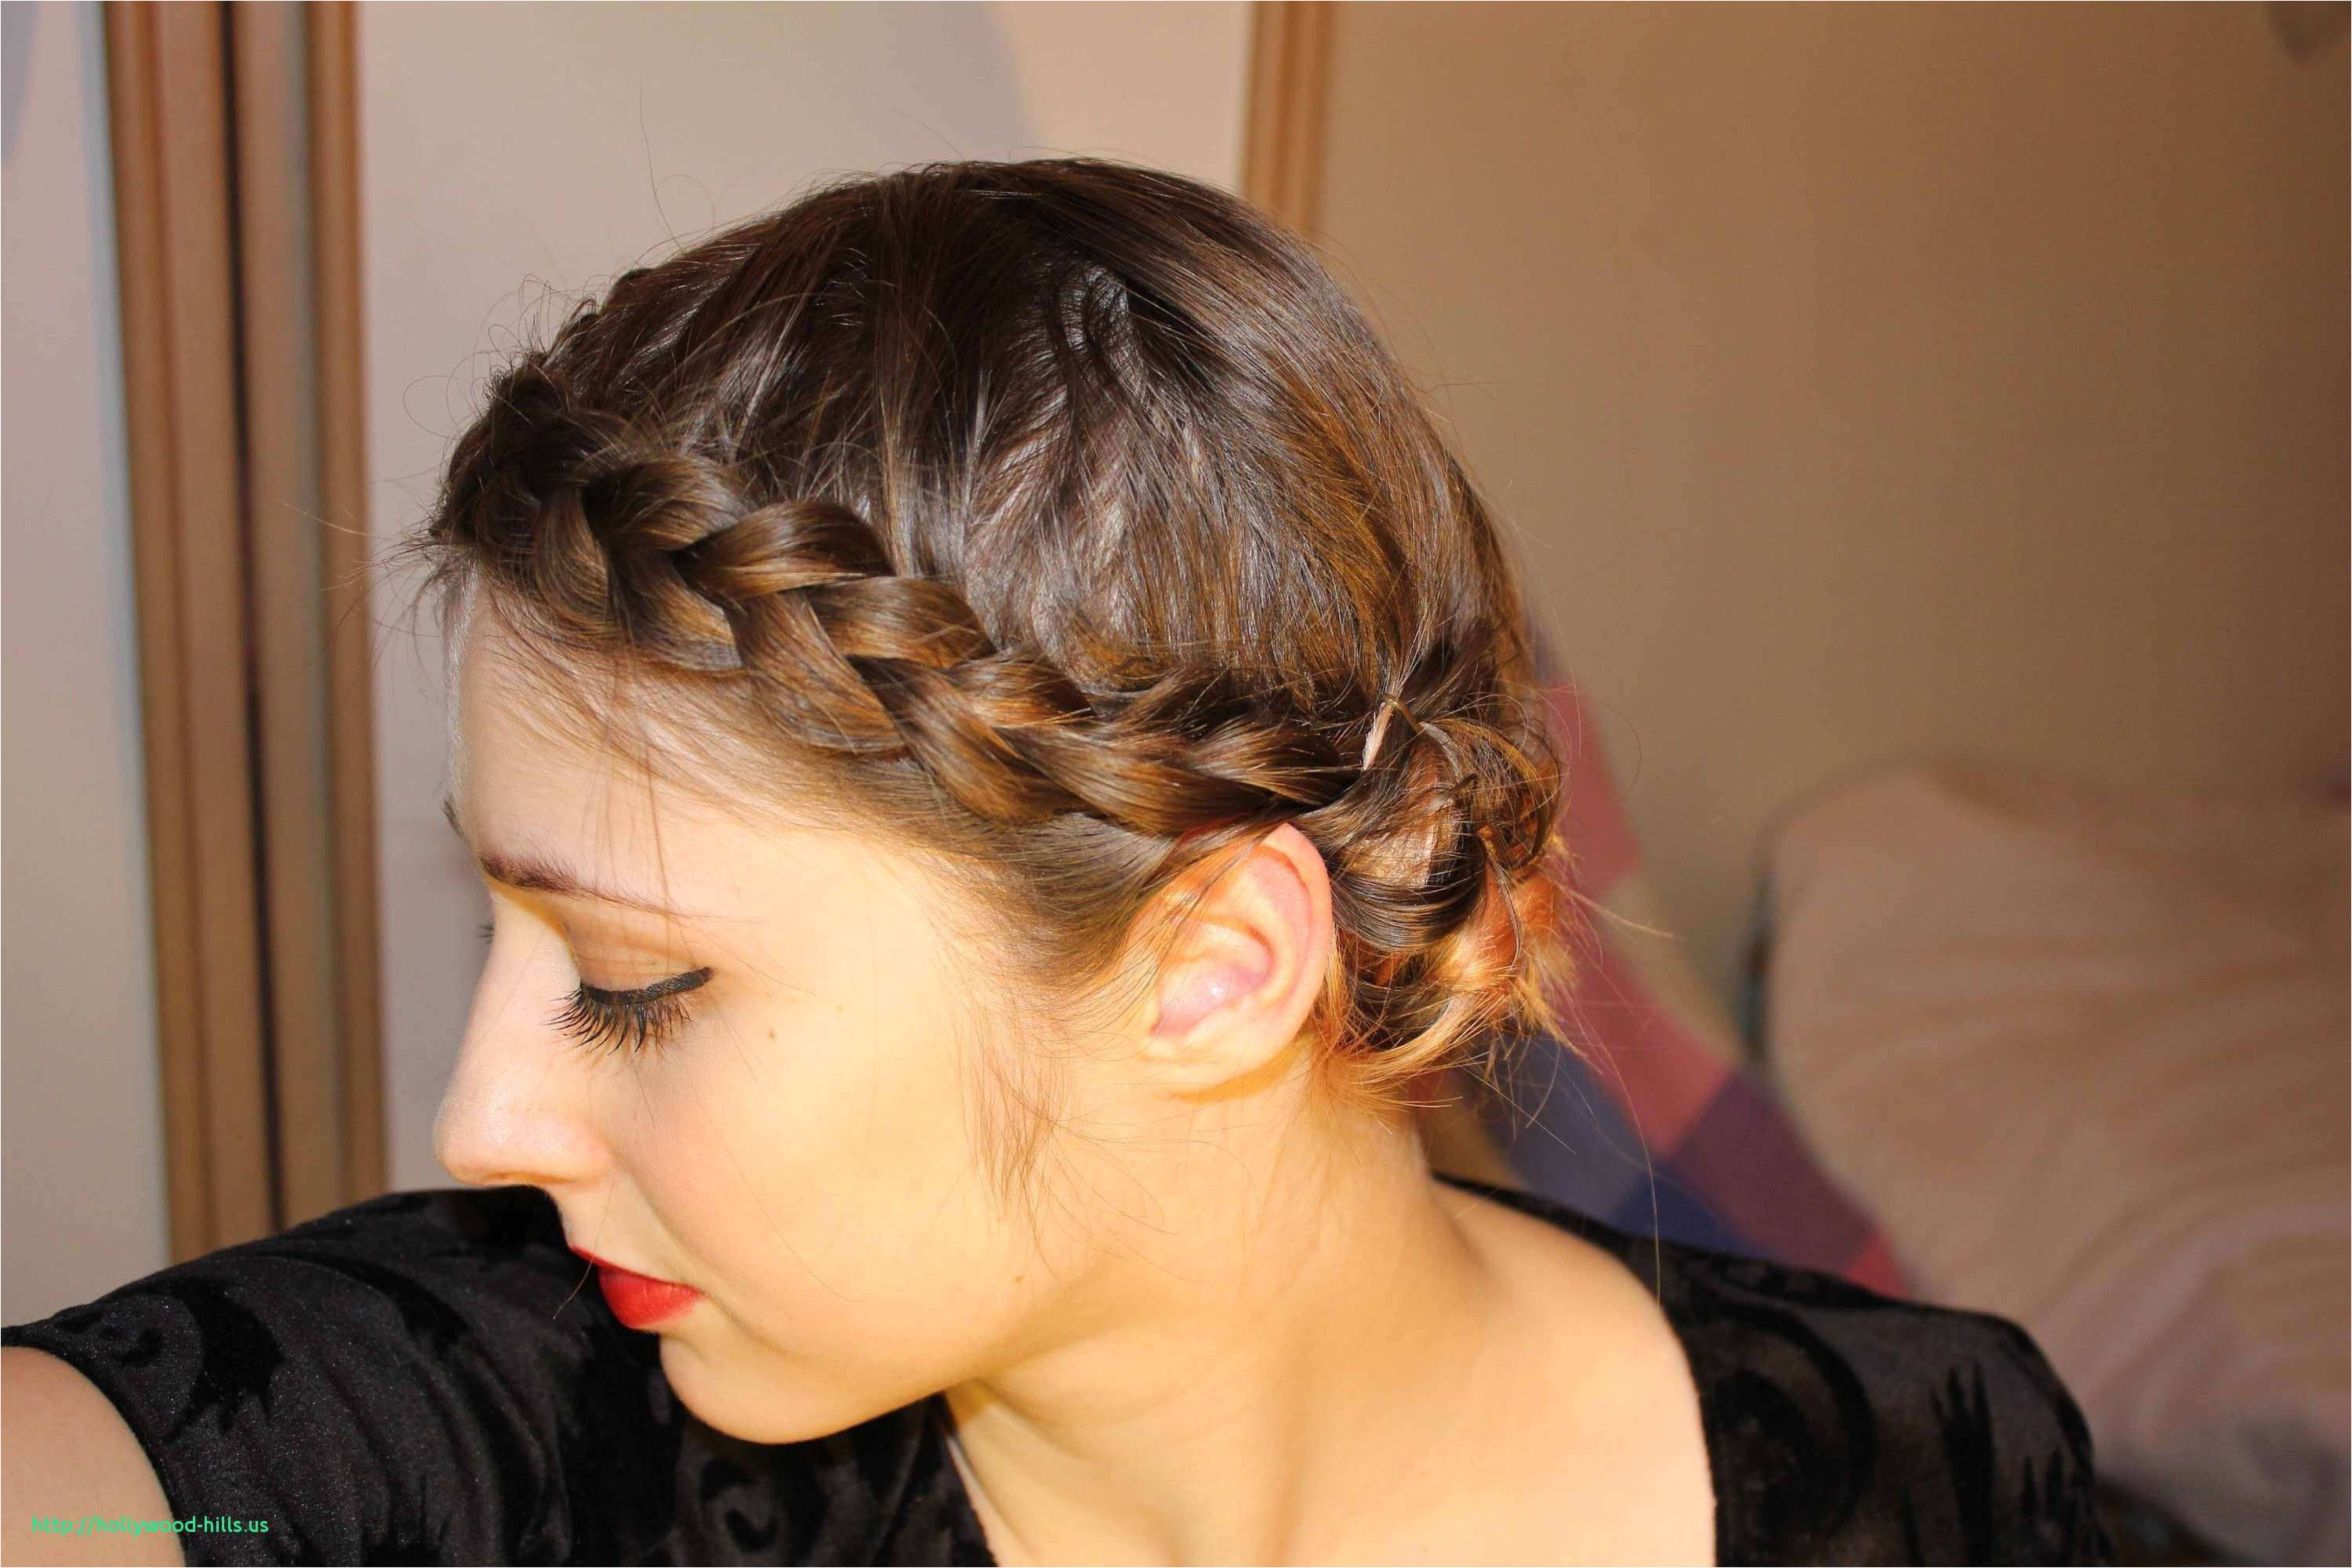 Girls Hairstyles Plaits Best Easy Hairstyles for Girls Elegant Hairstyle Ideas Best Good – Fezfestival